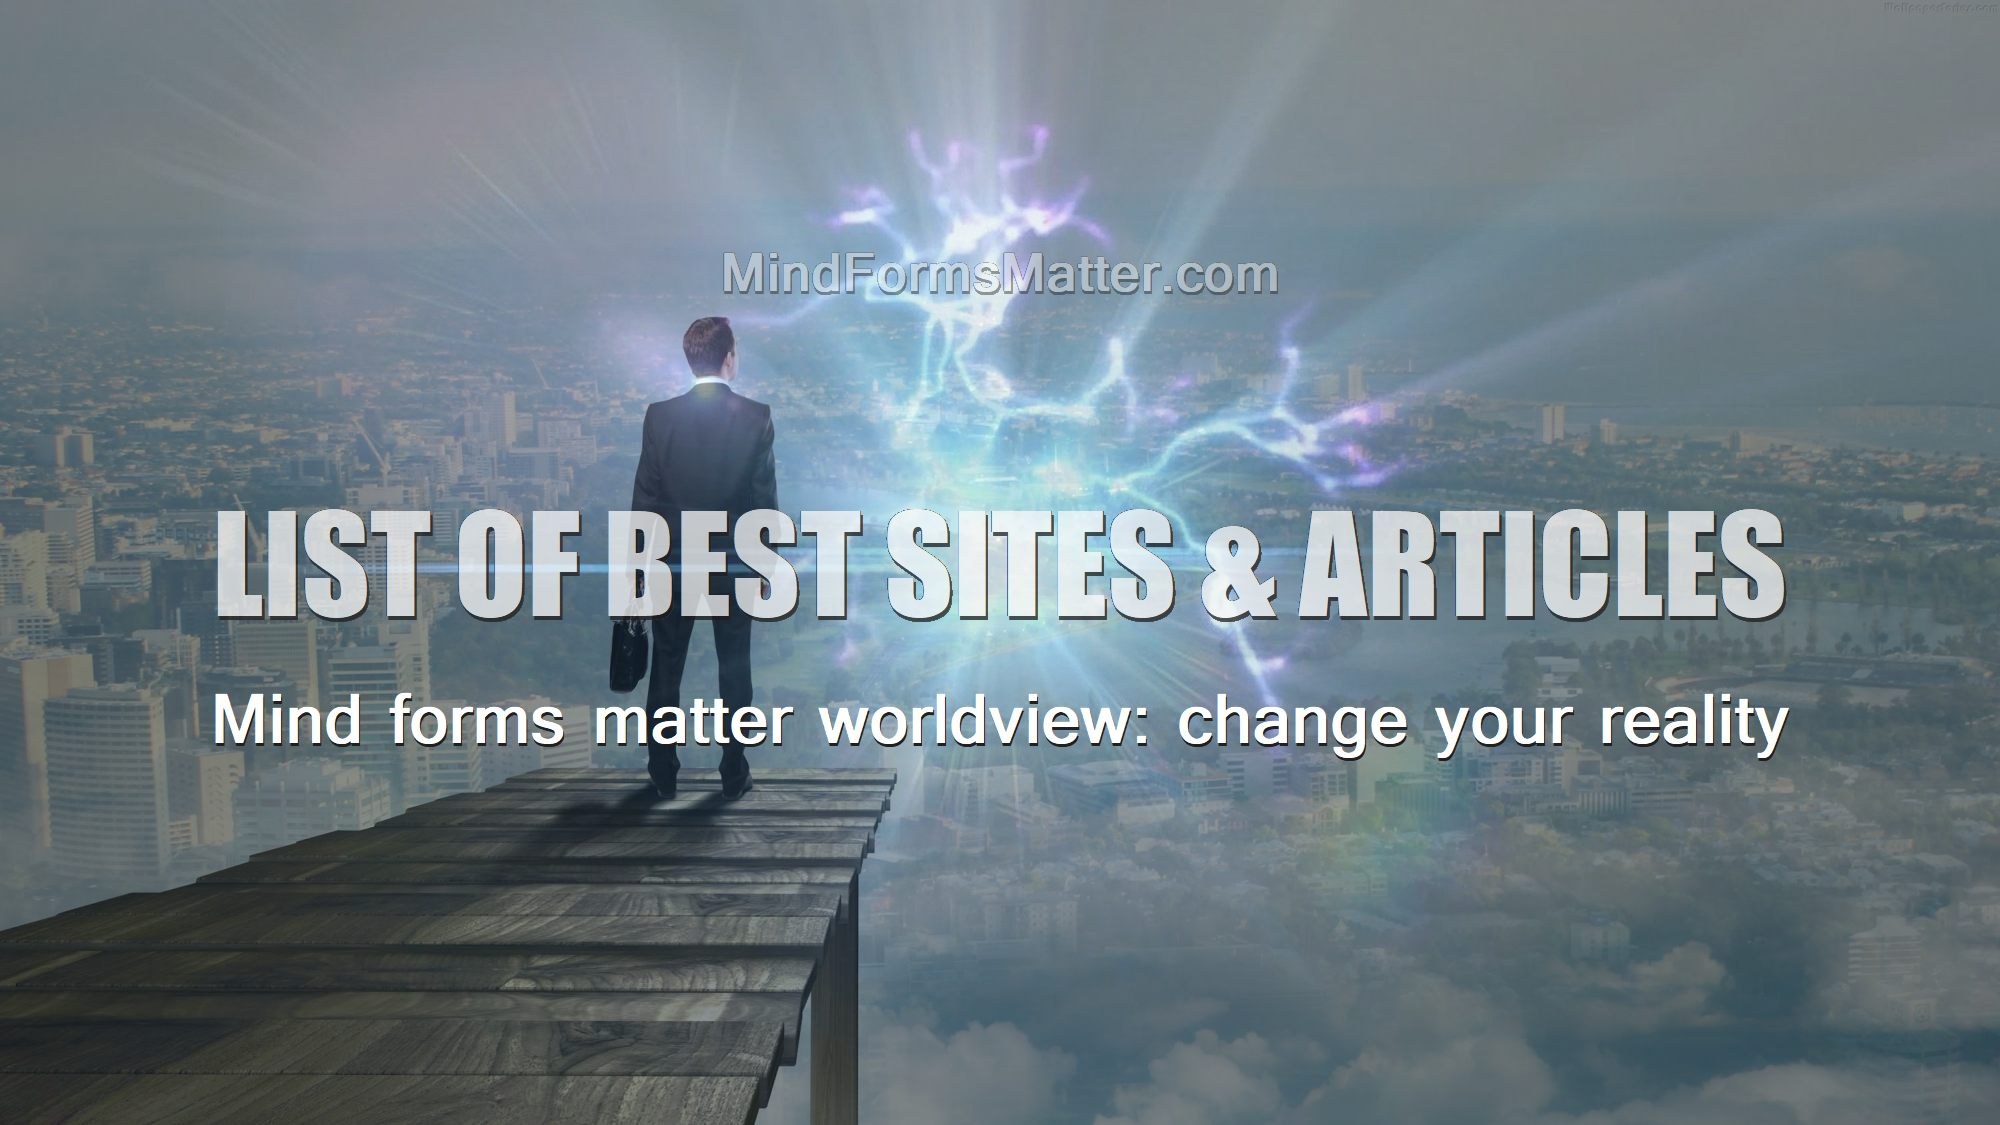 Man-looking-at-view-of-city-depicts-mind-forms-matter-websites-list-links-the-best-sites-free-articles-list-metaphysical-philosophy-paradigm-worldview